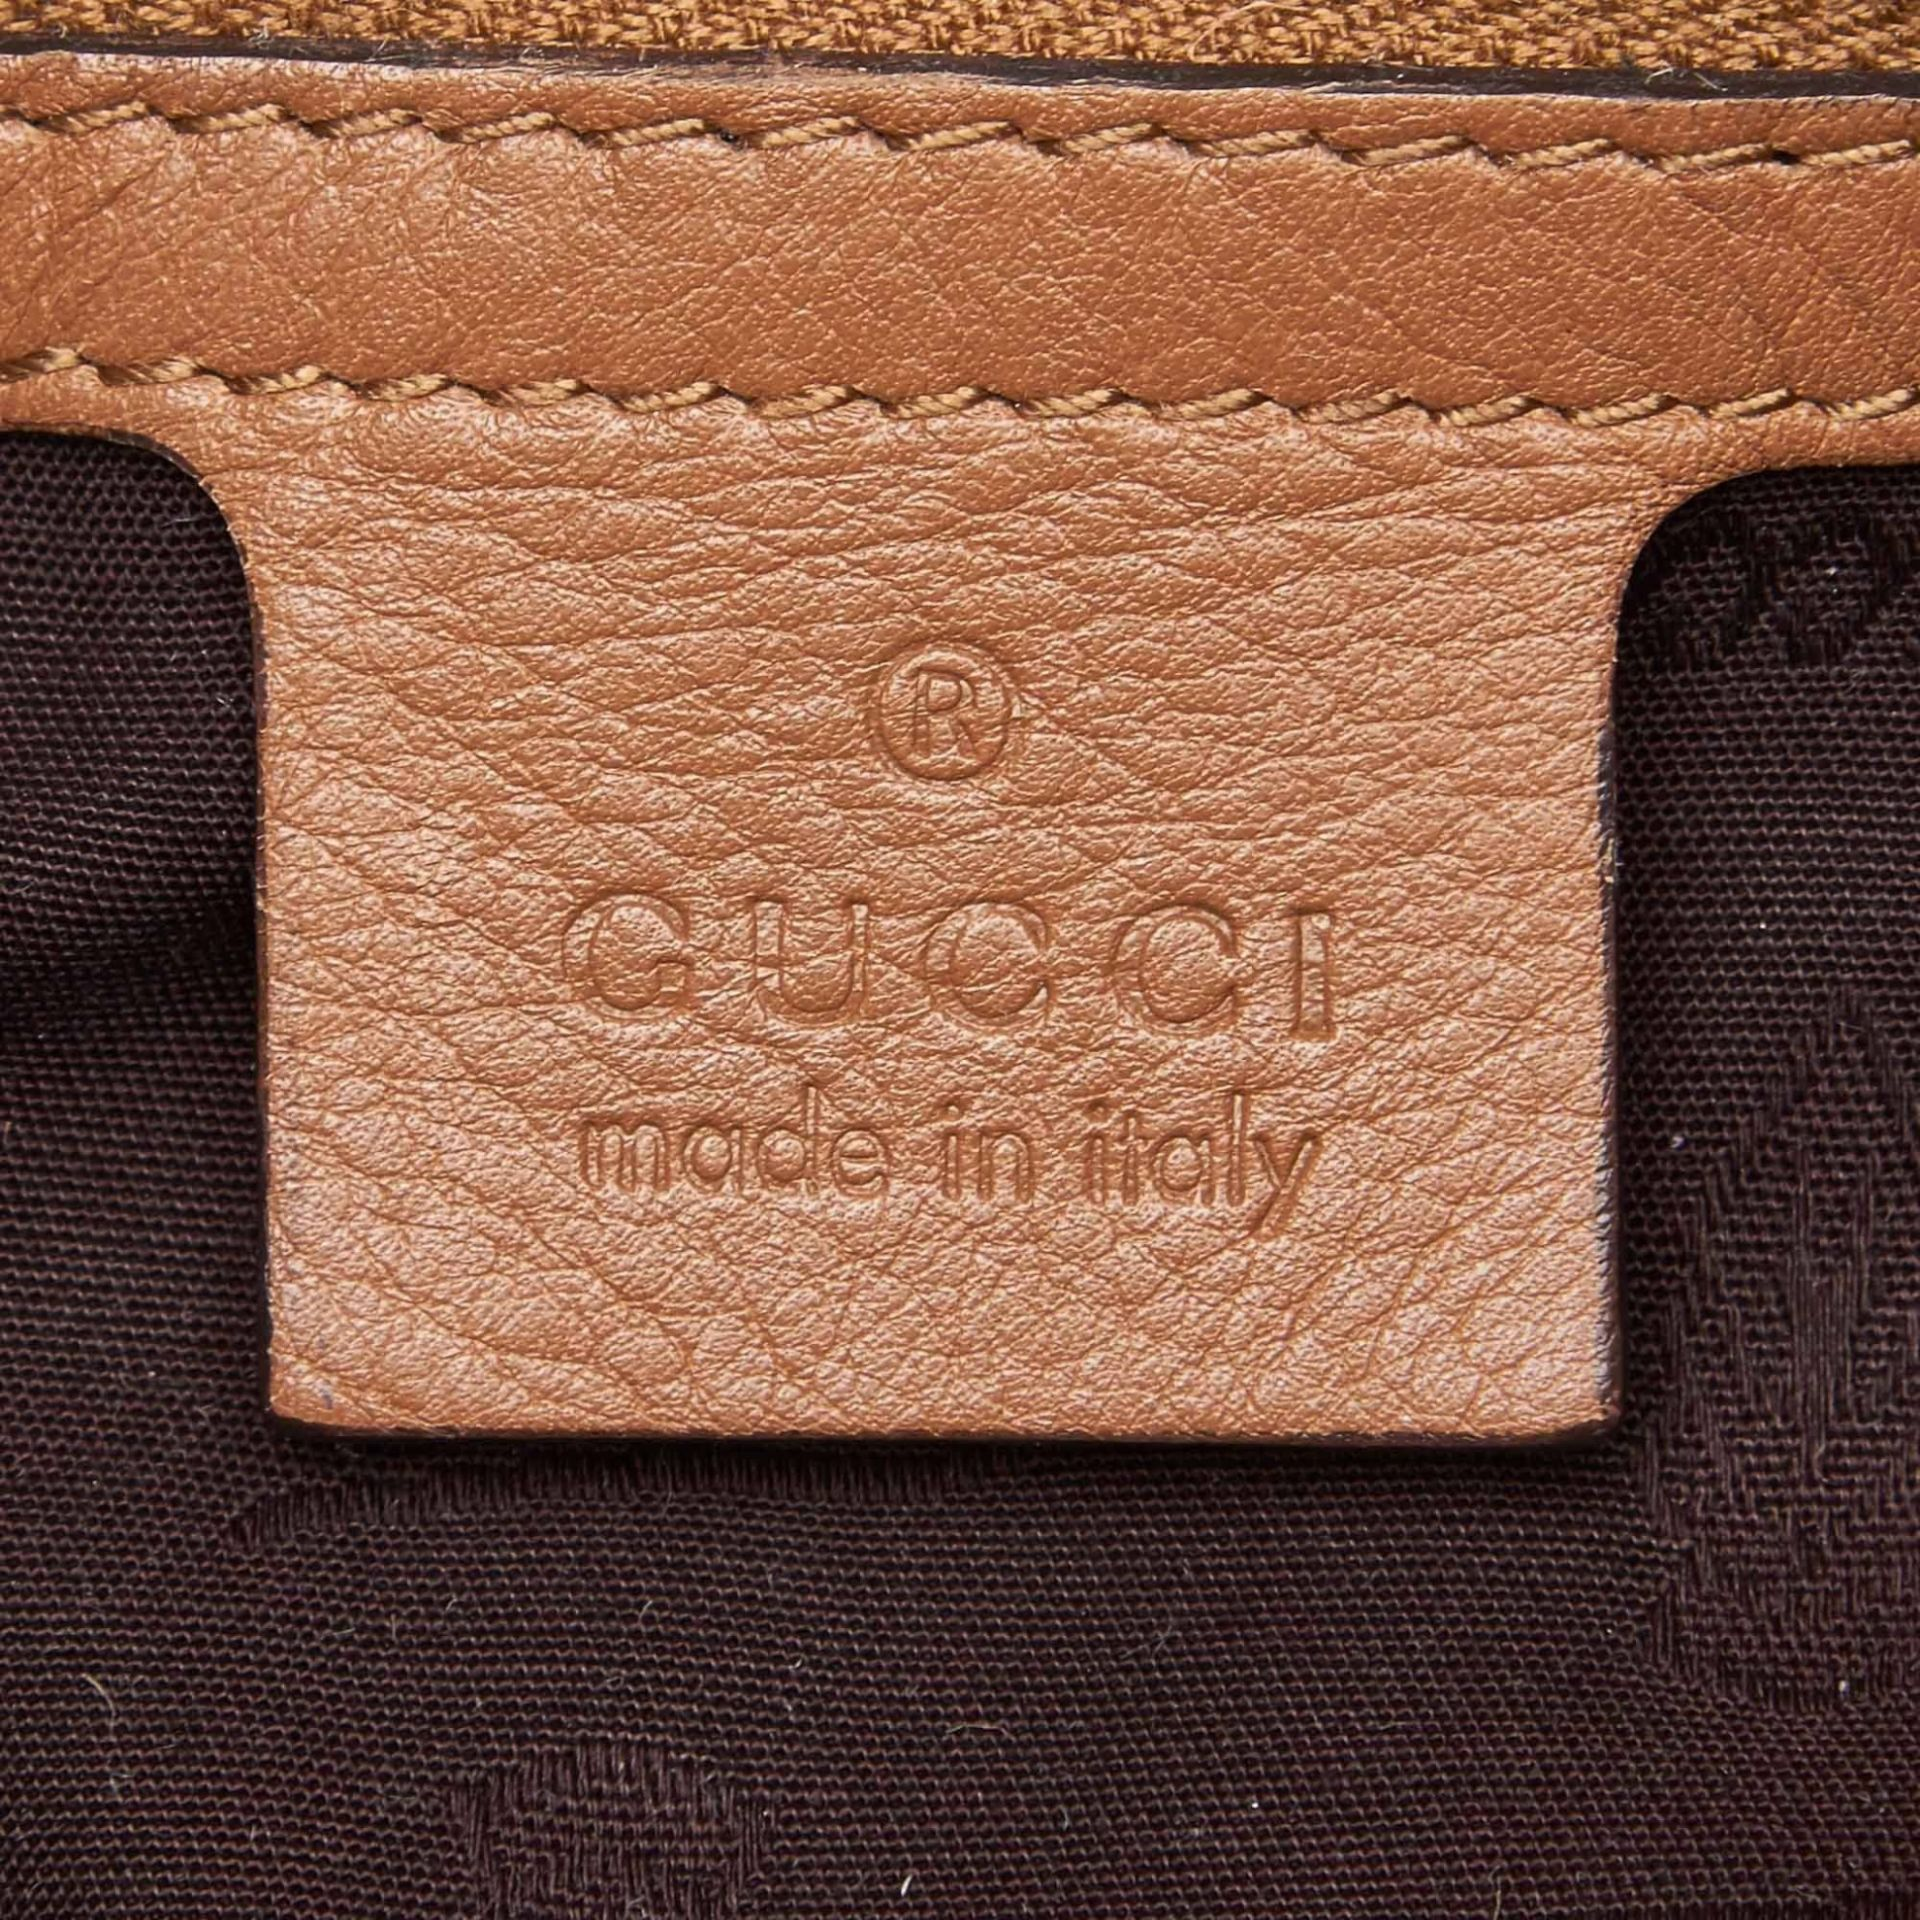 Tan Gucci Leather Guccissima Icon Bit Satchel